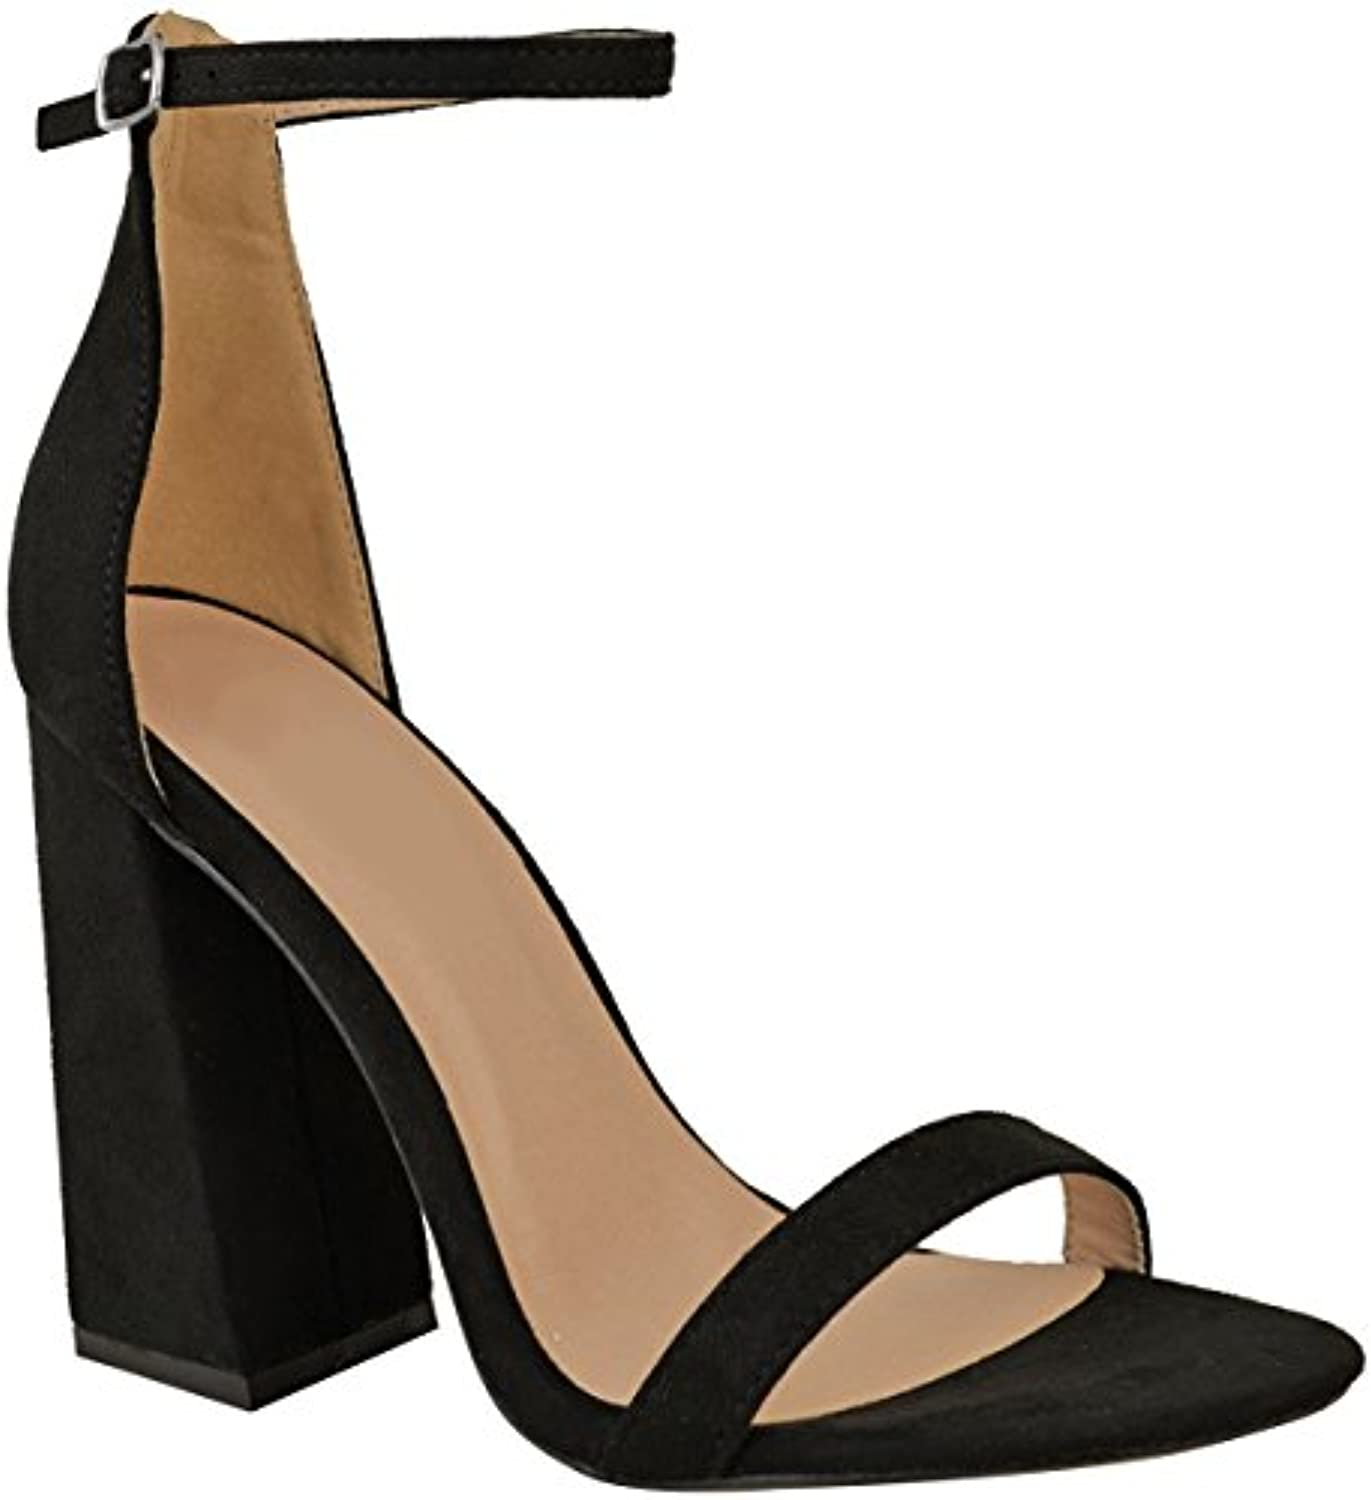 4a84bd9cb97f Fashion Thirsty Heelberry® Womens Thirsty Ladies Block High 30064 Heels  Ankle Parent Strap Barely There Sandals Shoes New Size B07CTLXBKL Parent  c9c6751 ...